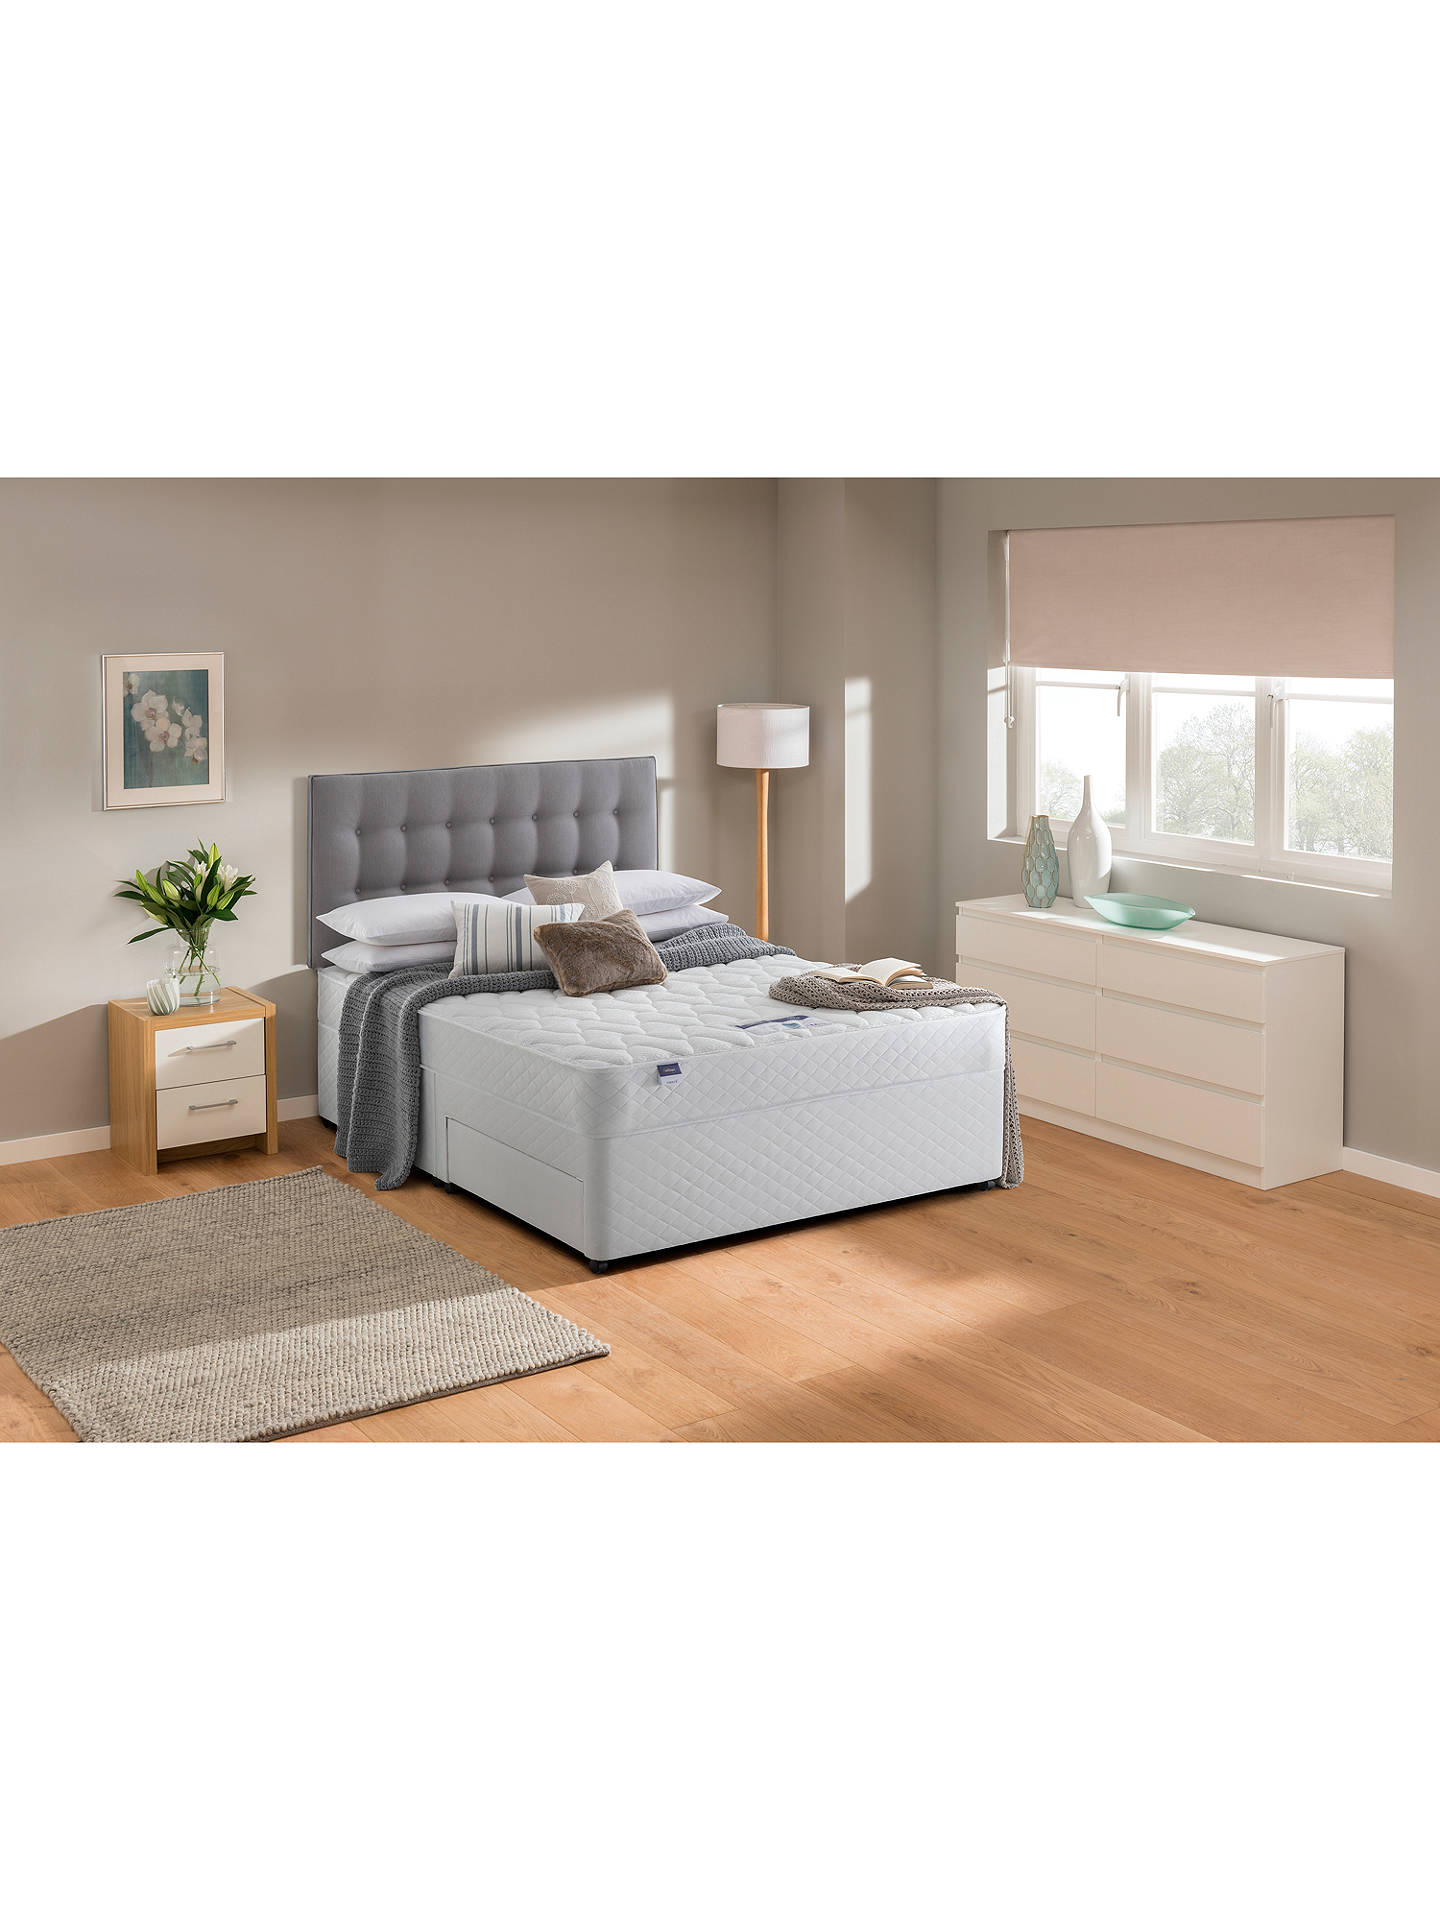 BuySilentnight Sleep Soundly Miracoil Comfort Mattress, Firm, King Size Online at johnlewis.com